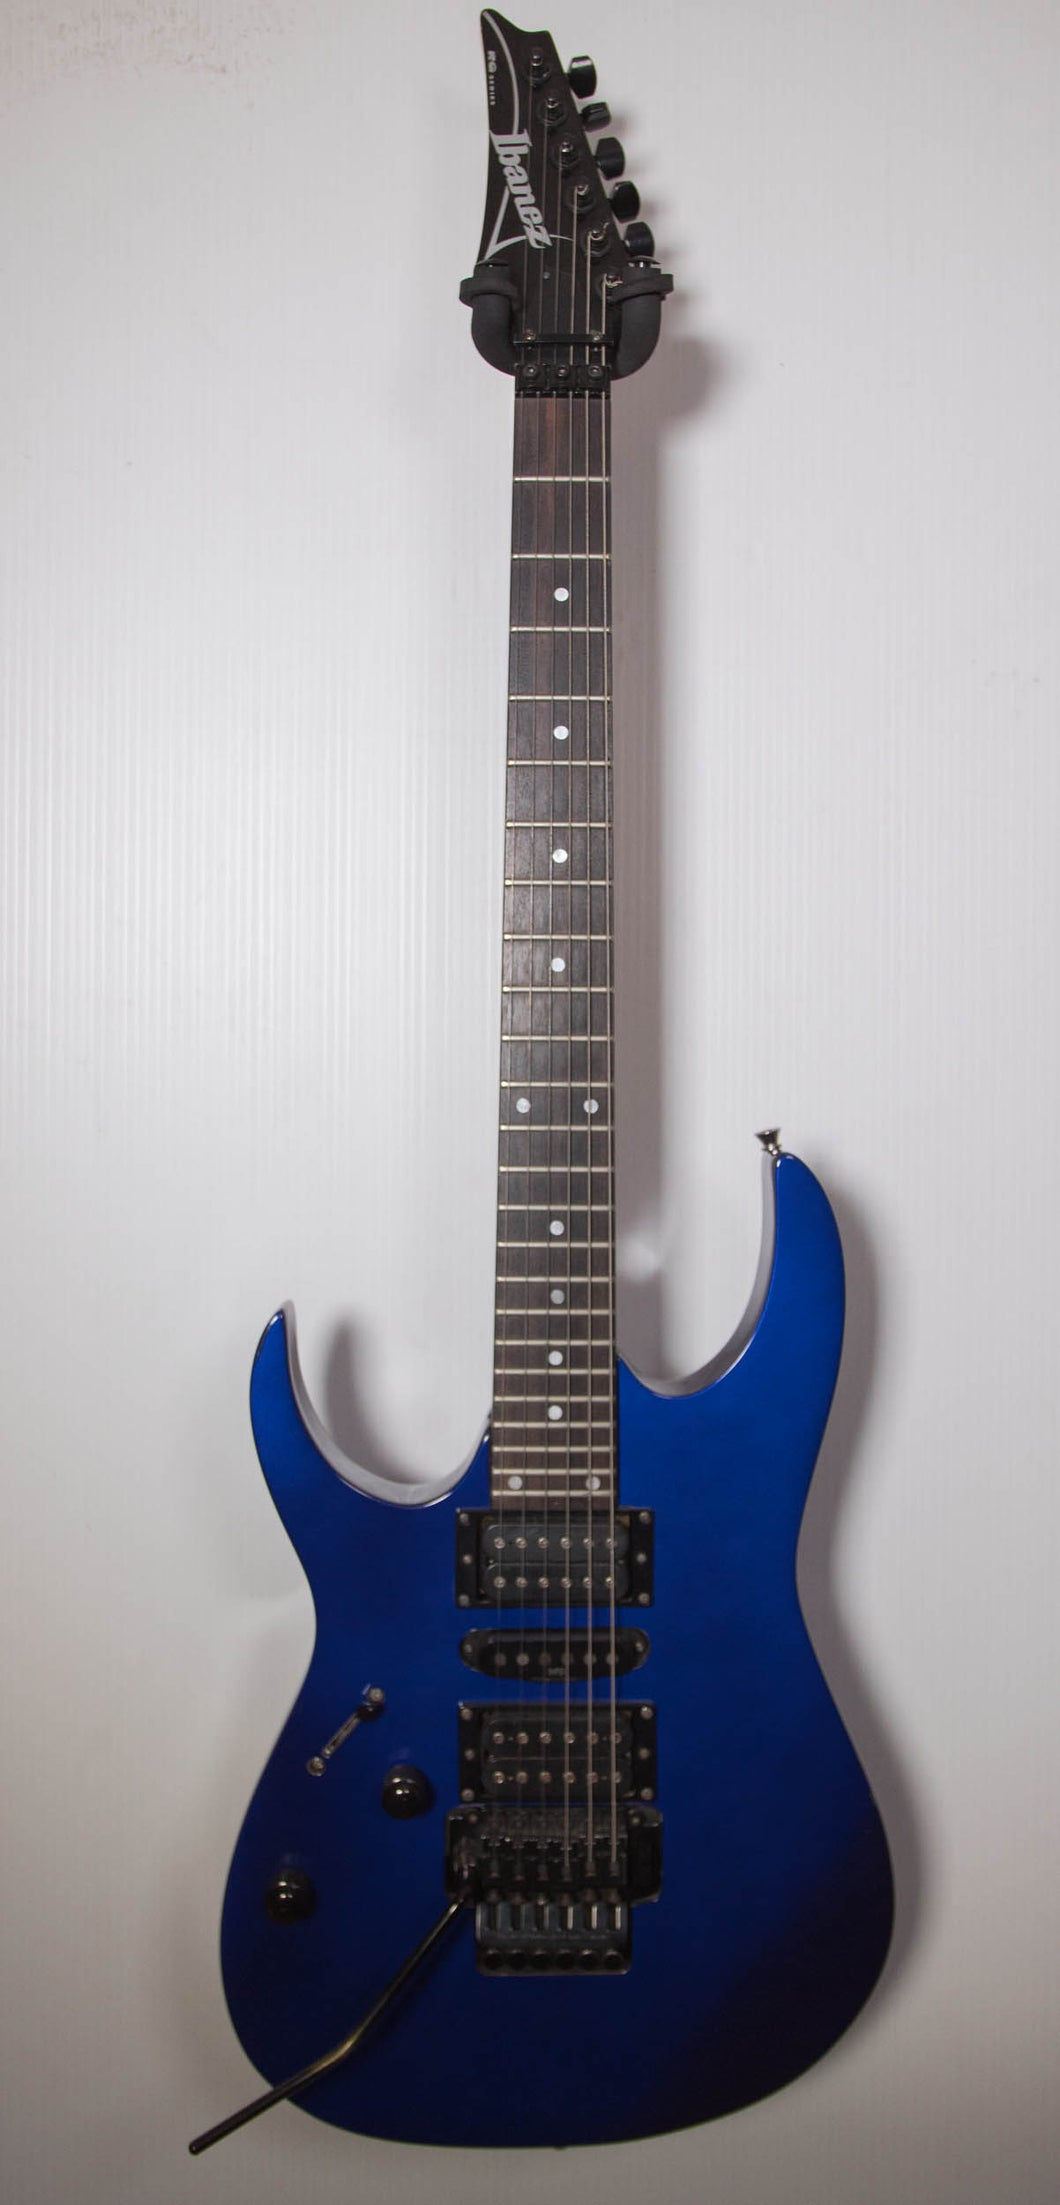 Ibanez RG 470 Lefty Electric Guitar (Blue)